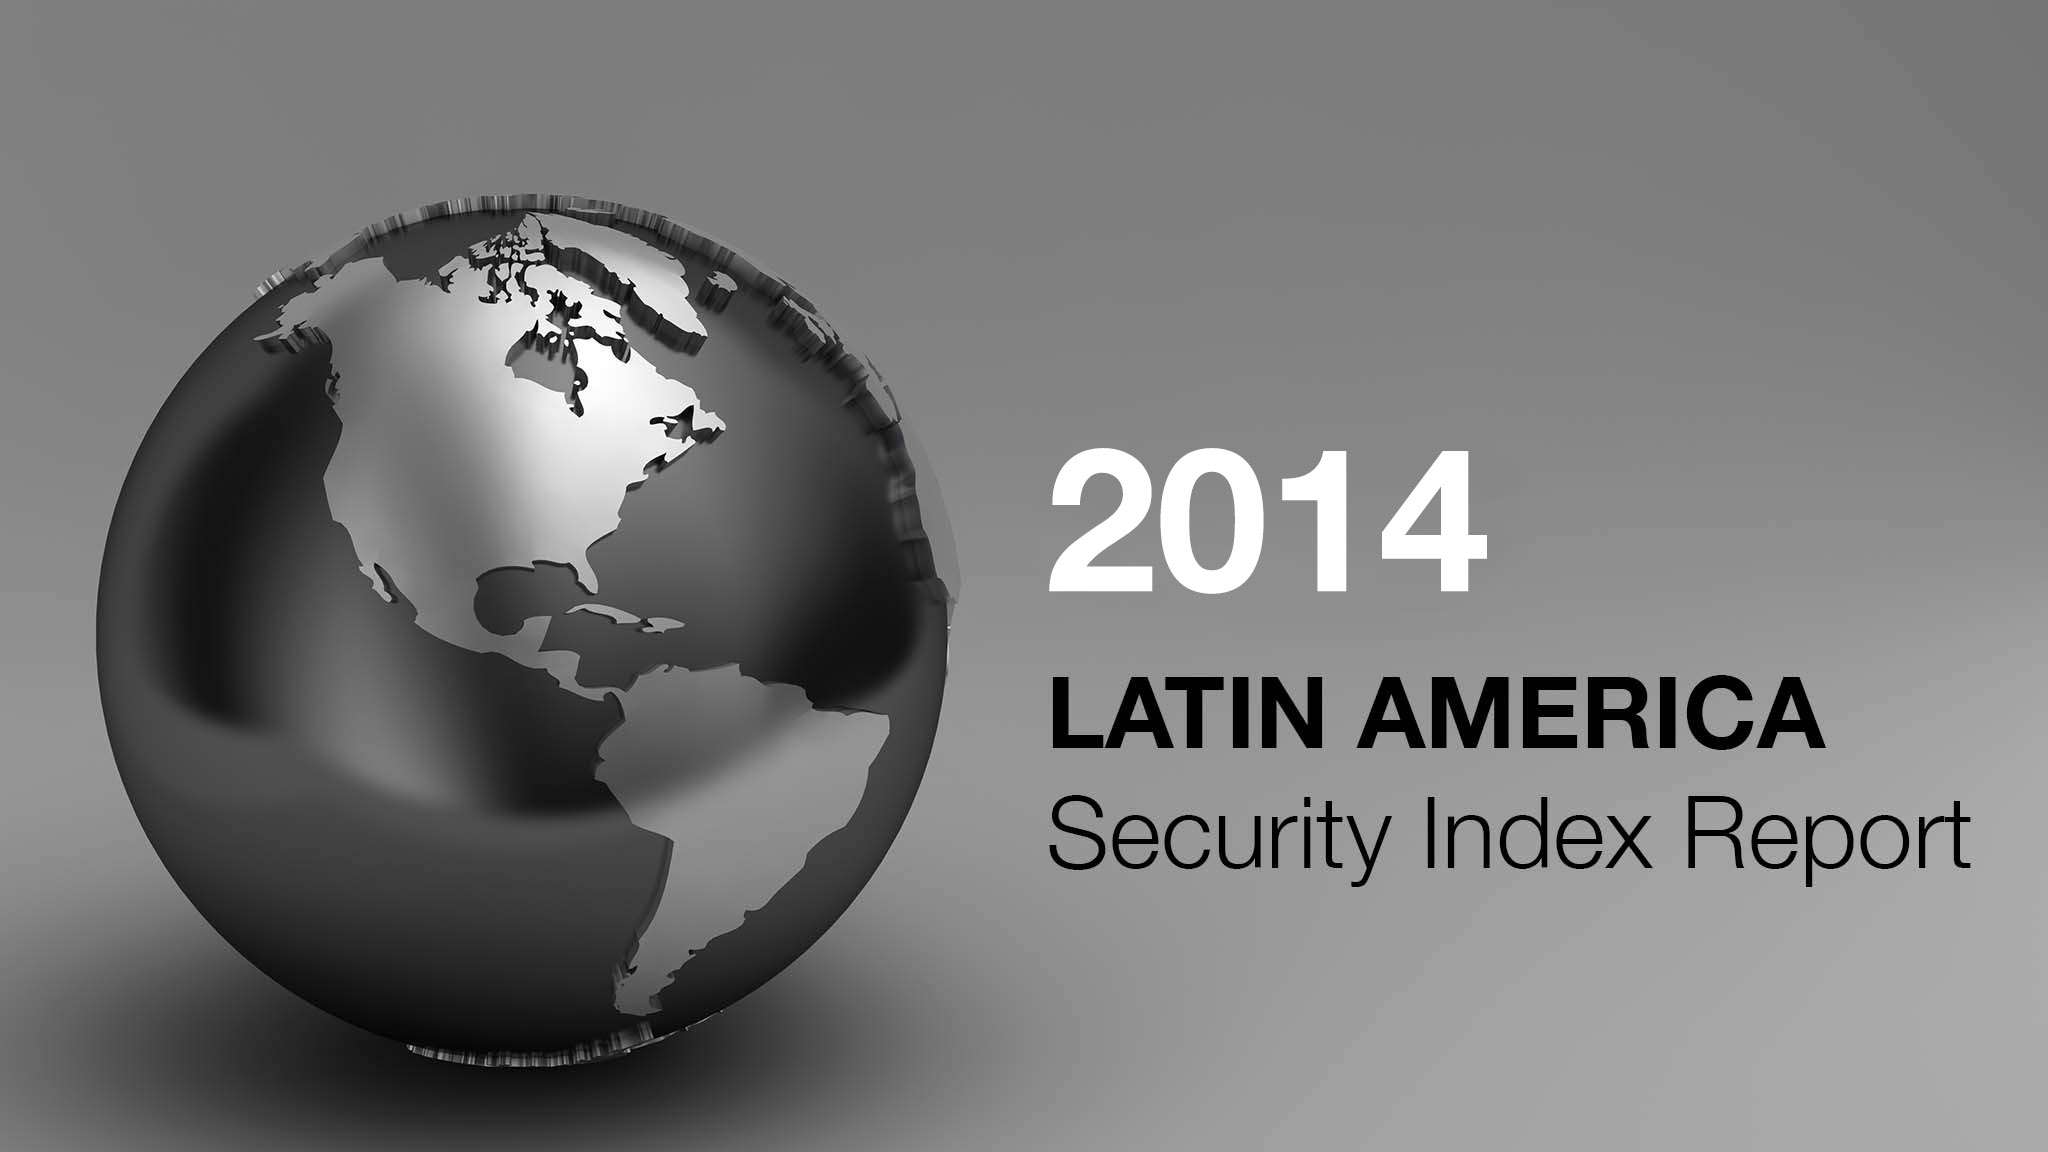 Frank Holder 2014 Latin America Security Index Report